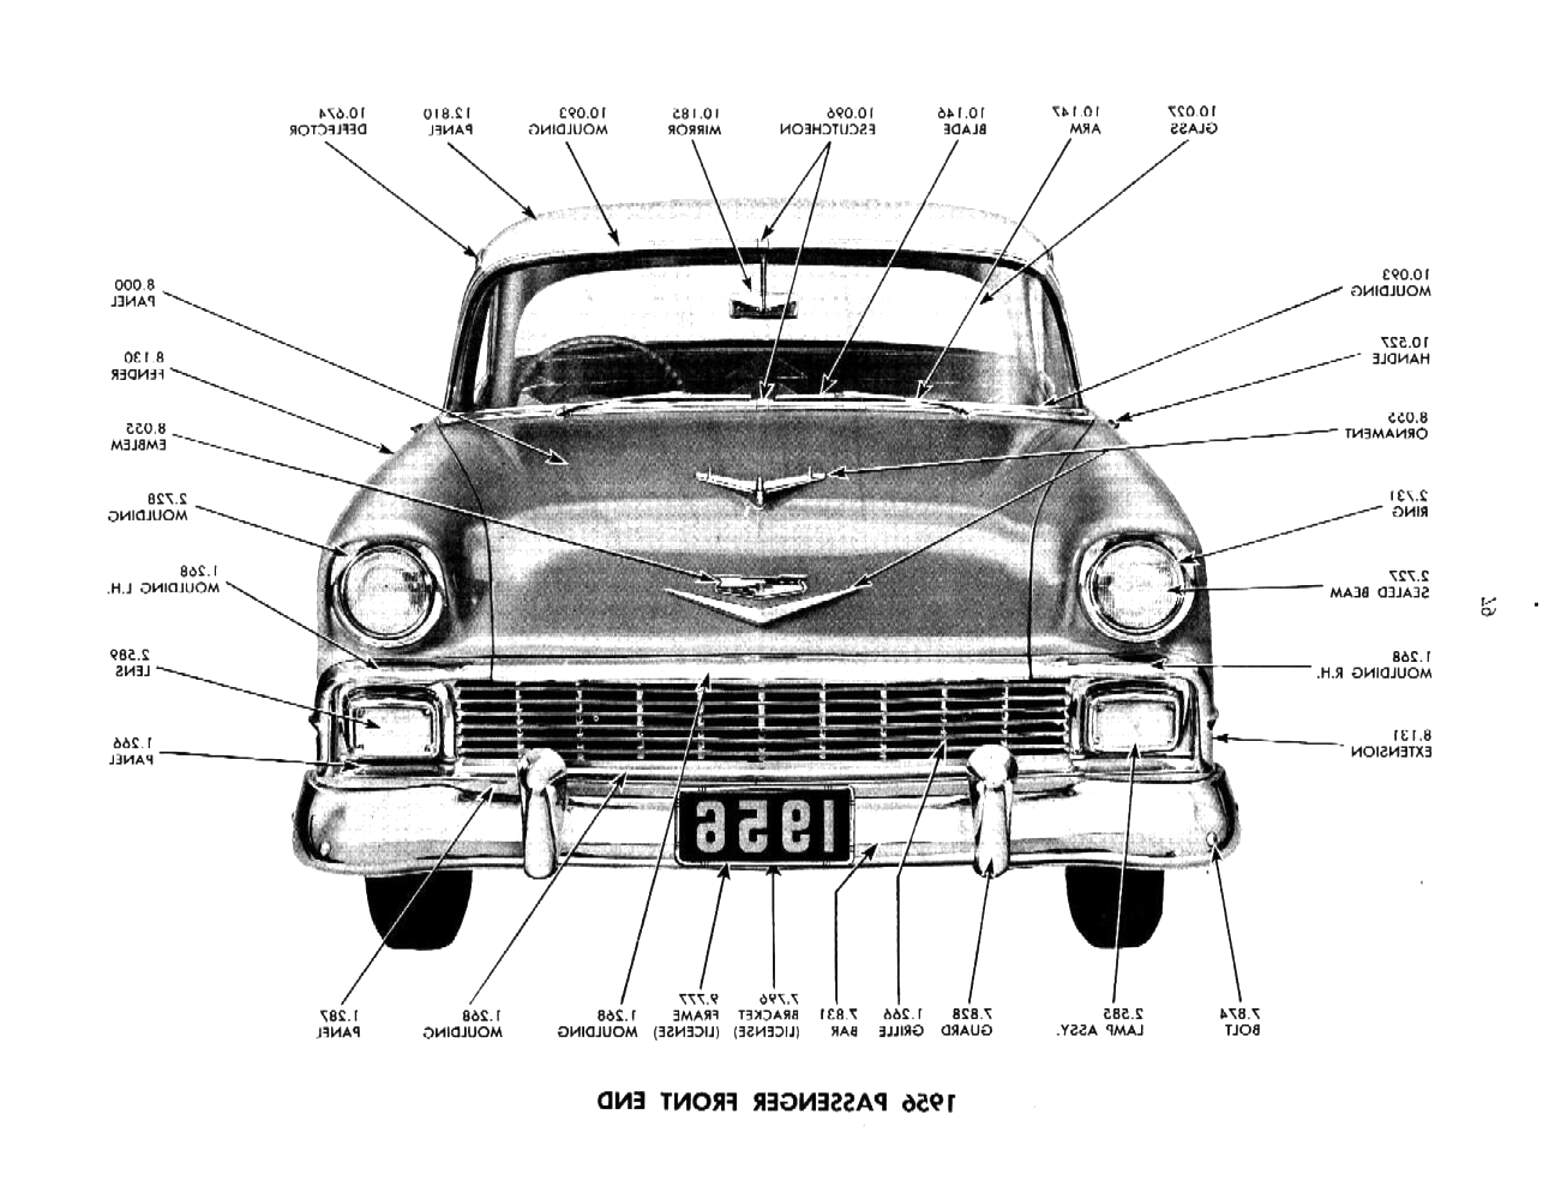 1956 chevy parts for sale